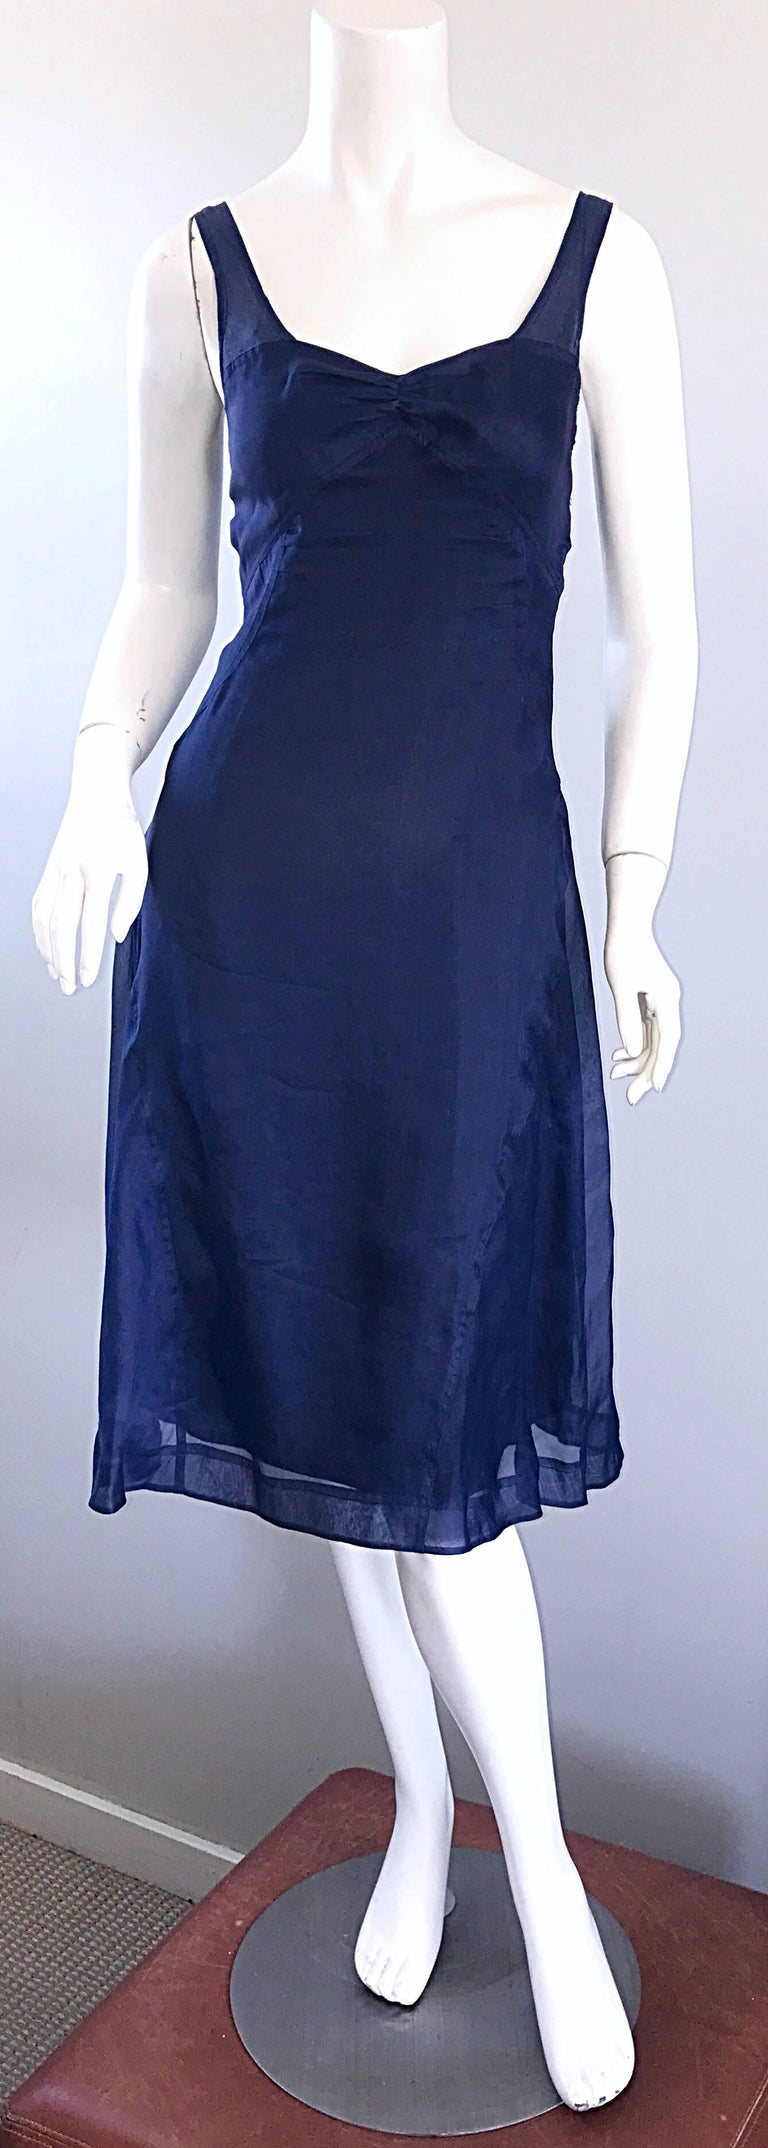 1990s Celine Navy Blue Silk Chiffon Sleeveless Overlay Sweetheart Vintage Dress For Sale 4